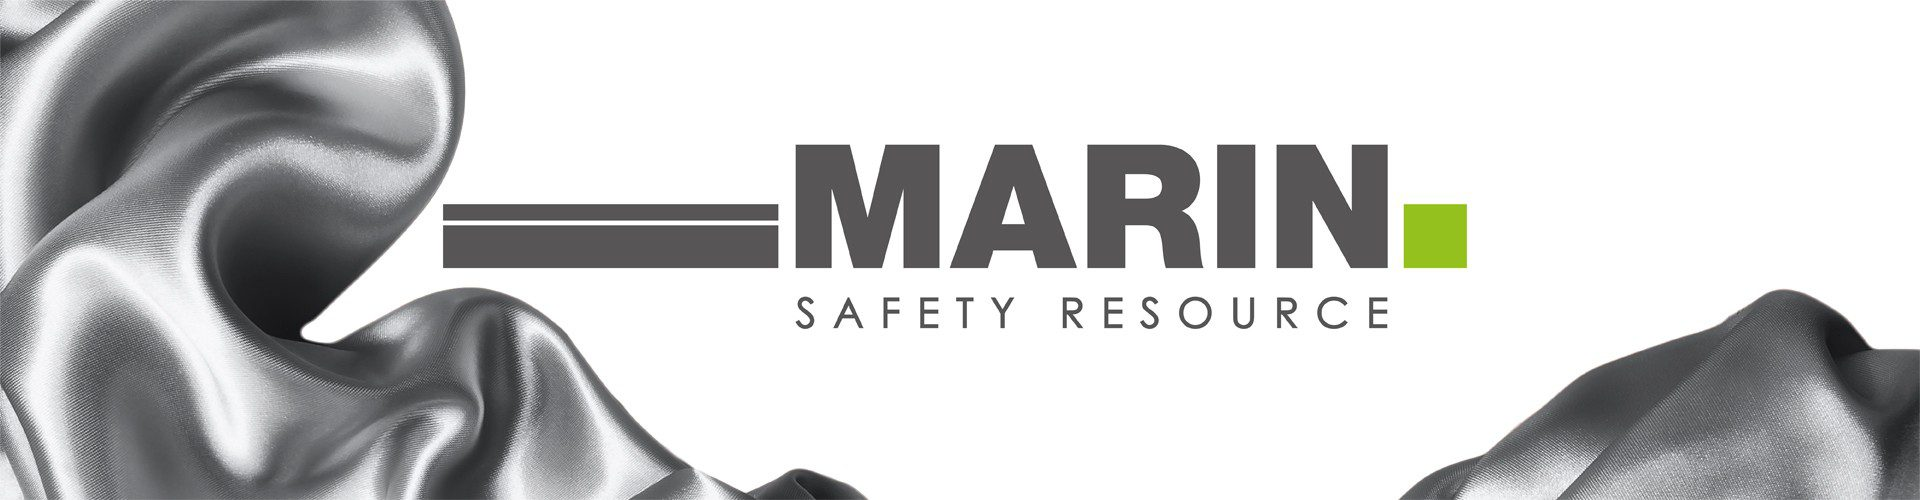 marin safety resource seta grigio perla